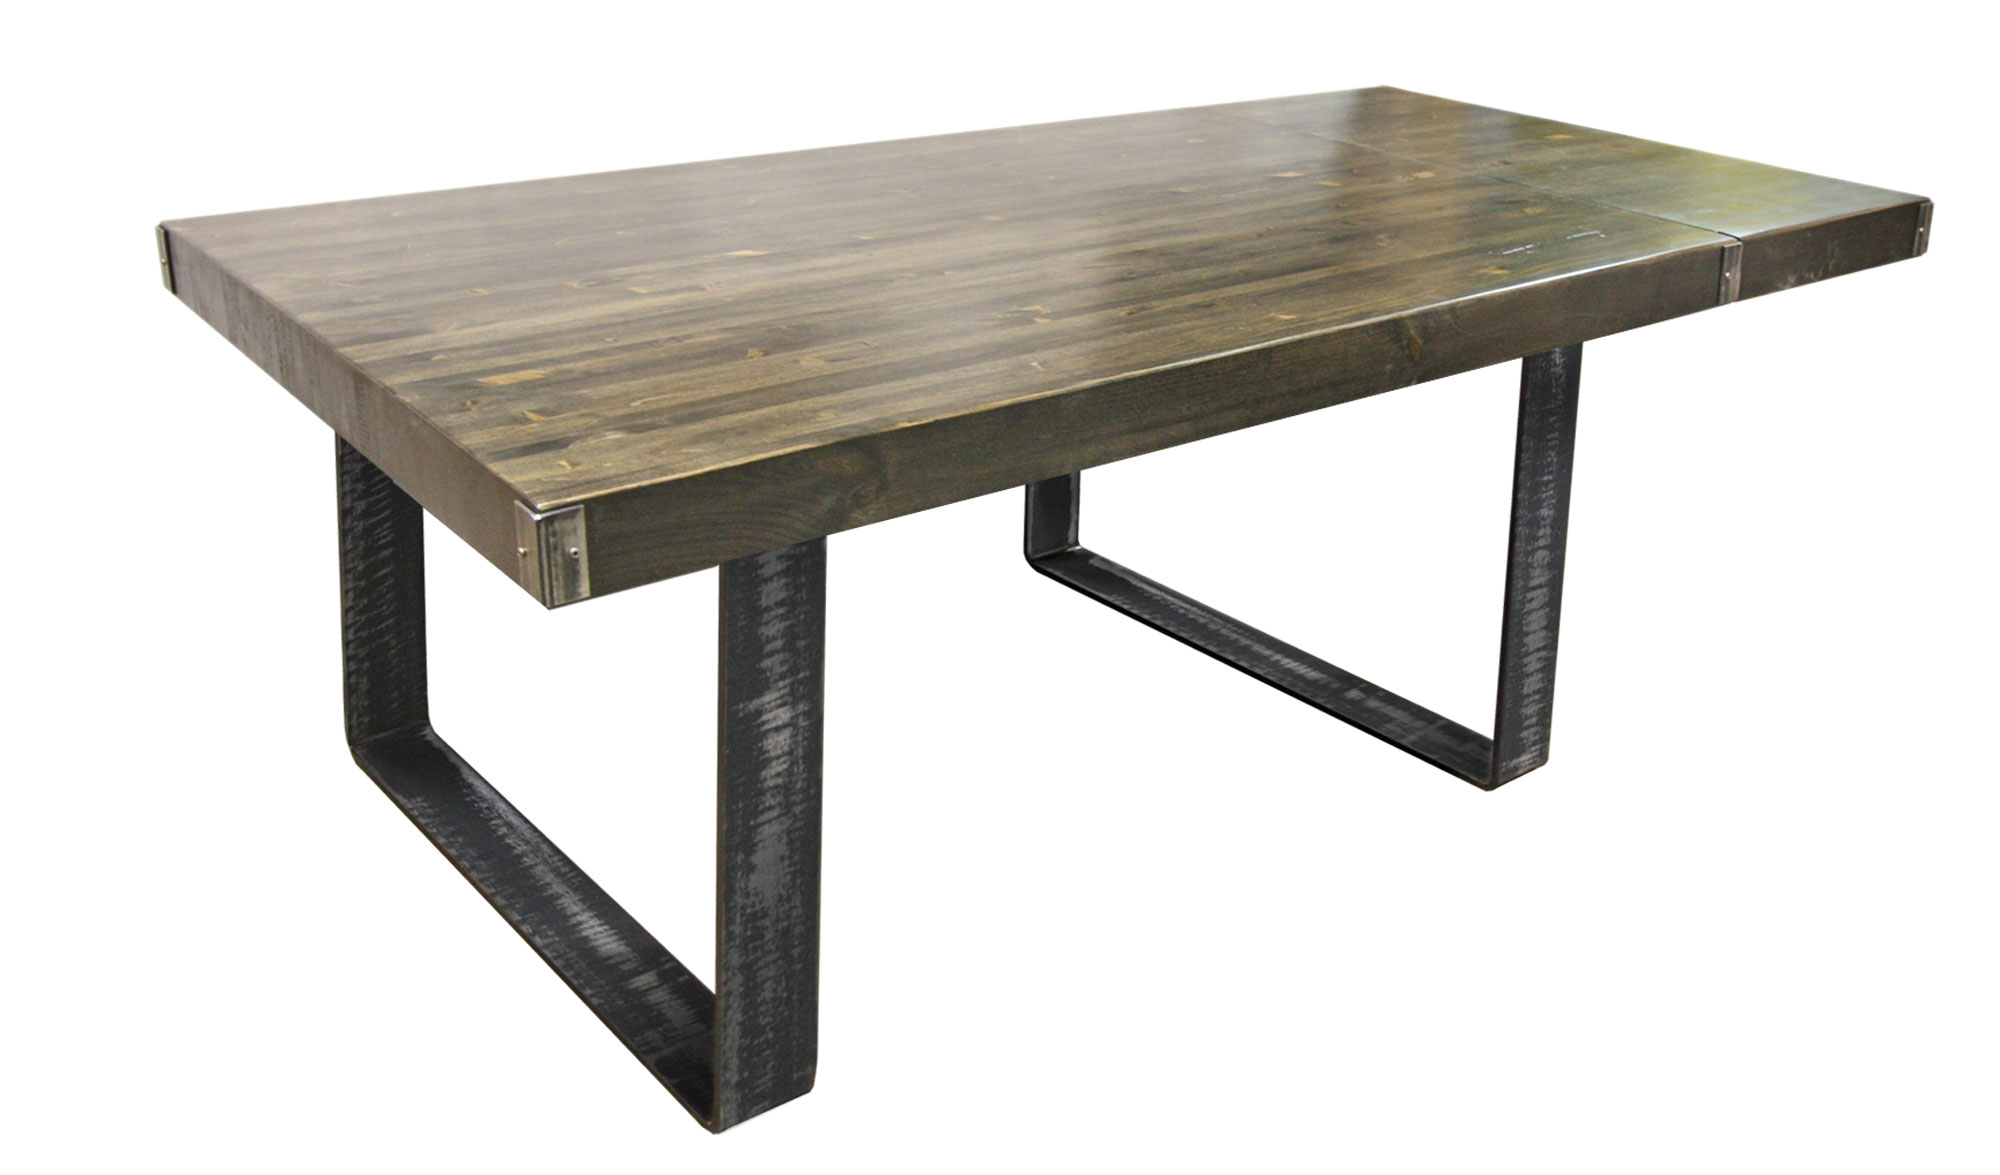 DINNER TABLE WITH EXTENSION